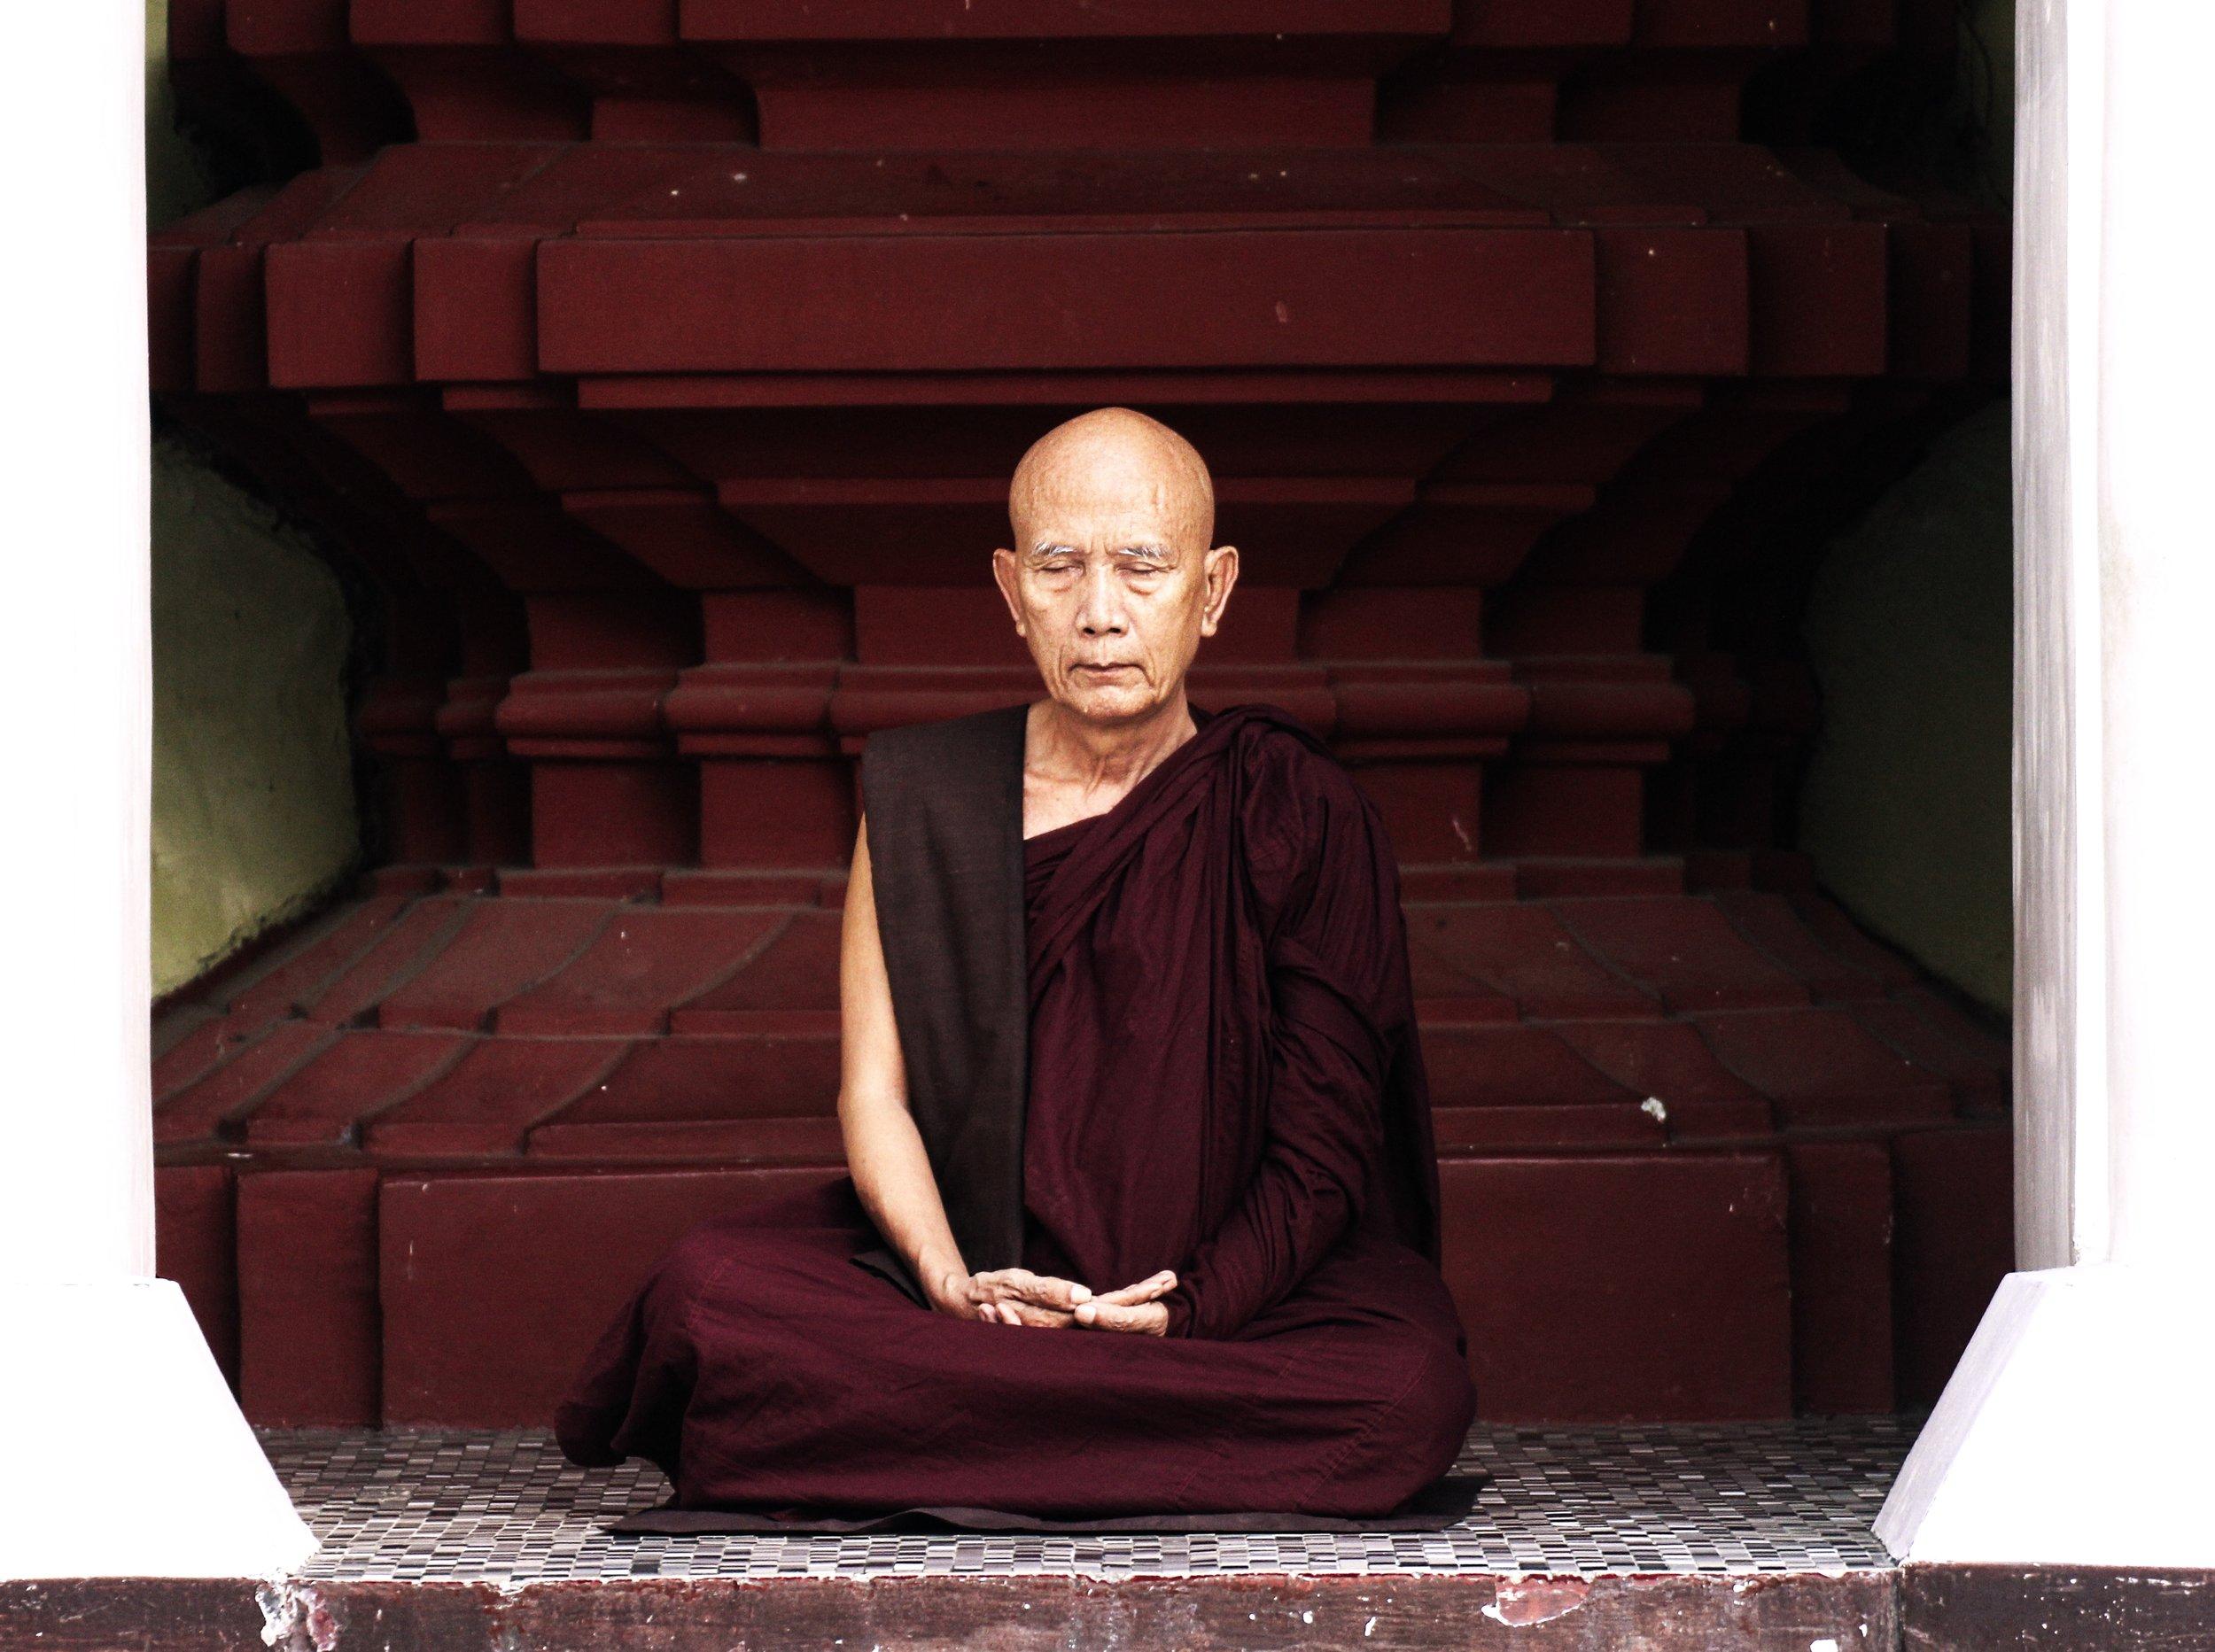 actually a Burmese monk, but I like the photo